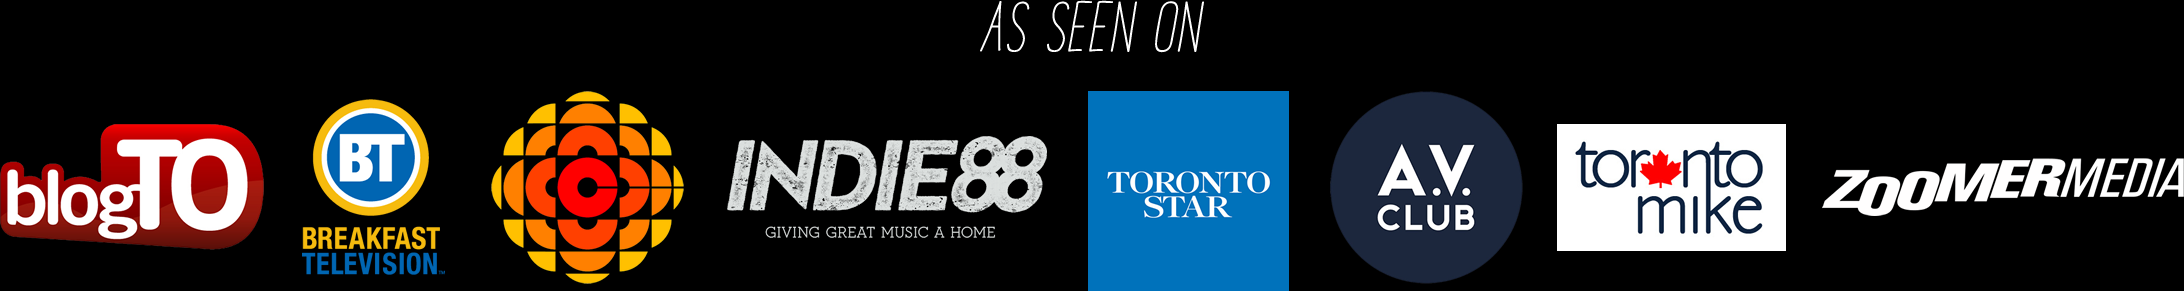 RETRONTARIO | Vintage and Retro Ontario TV broadcasts from the 1970s